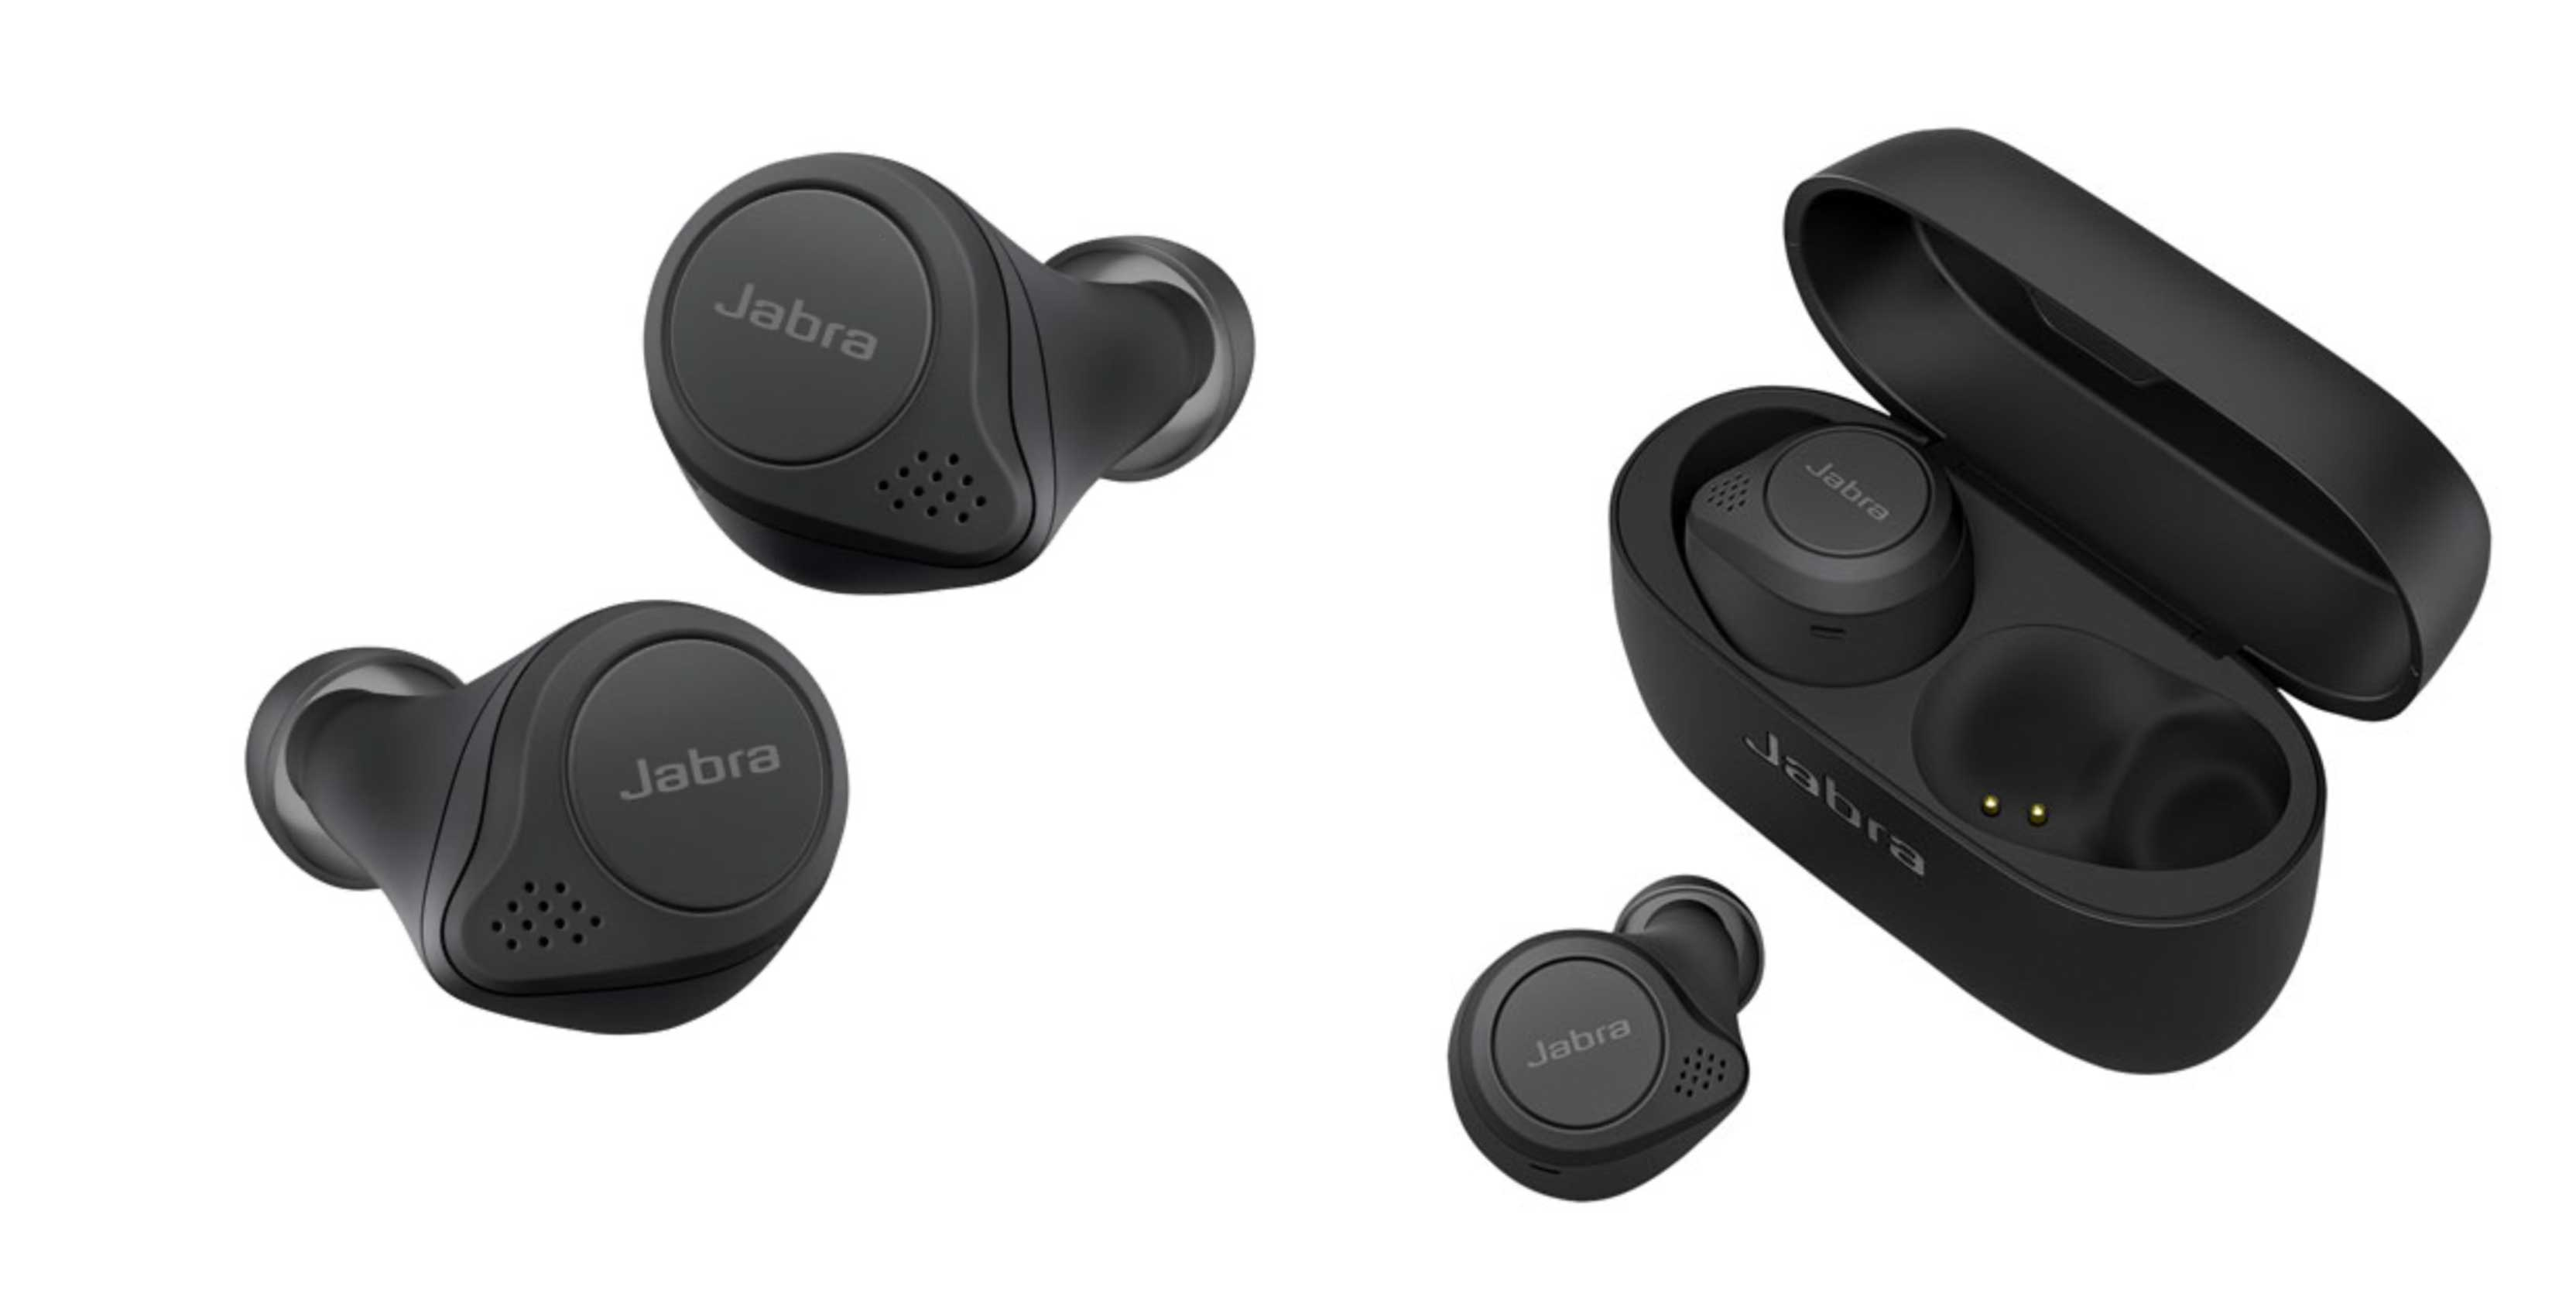 Jabra S Elite 75t Wireless Earbuds Are Available Now